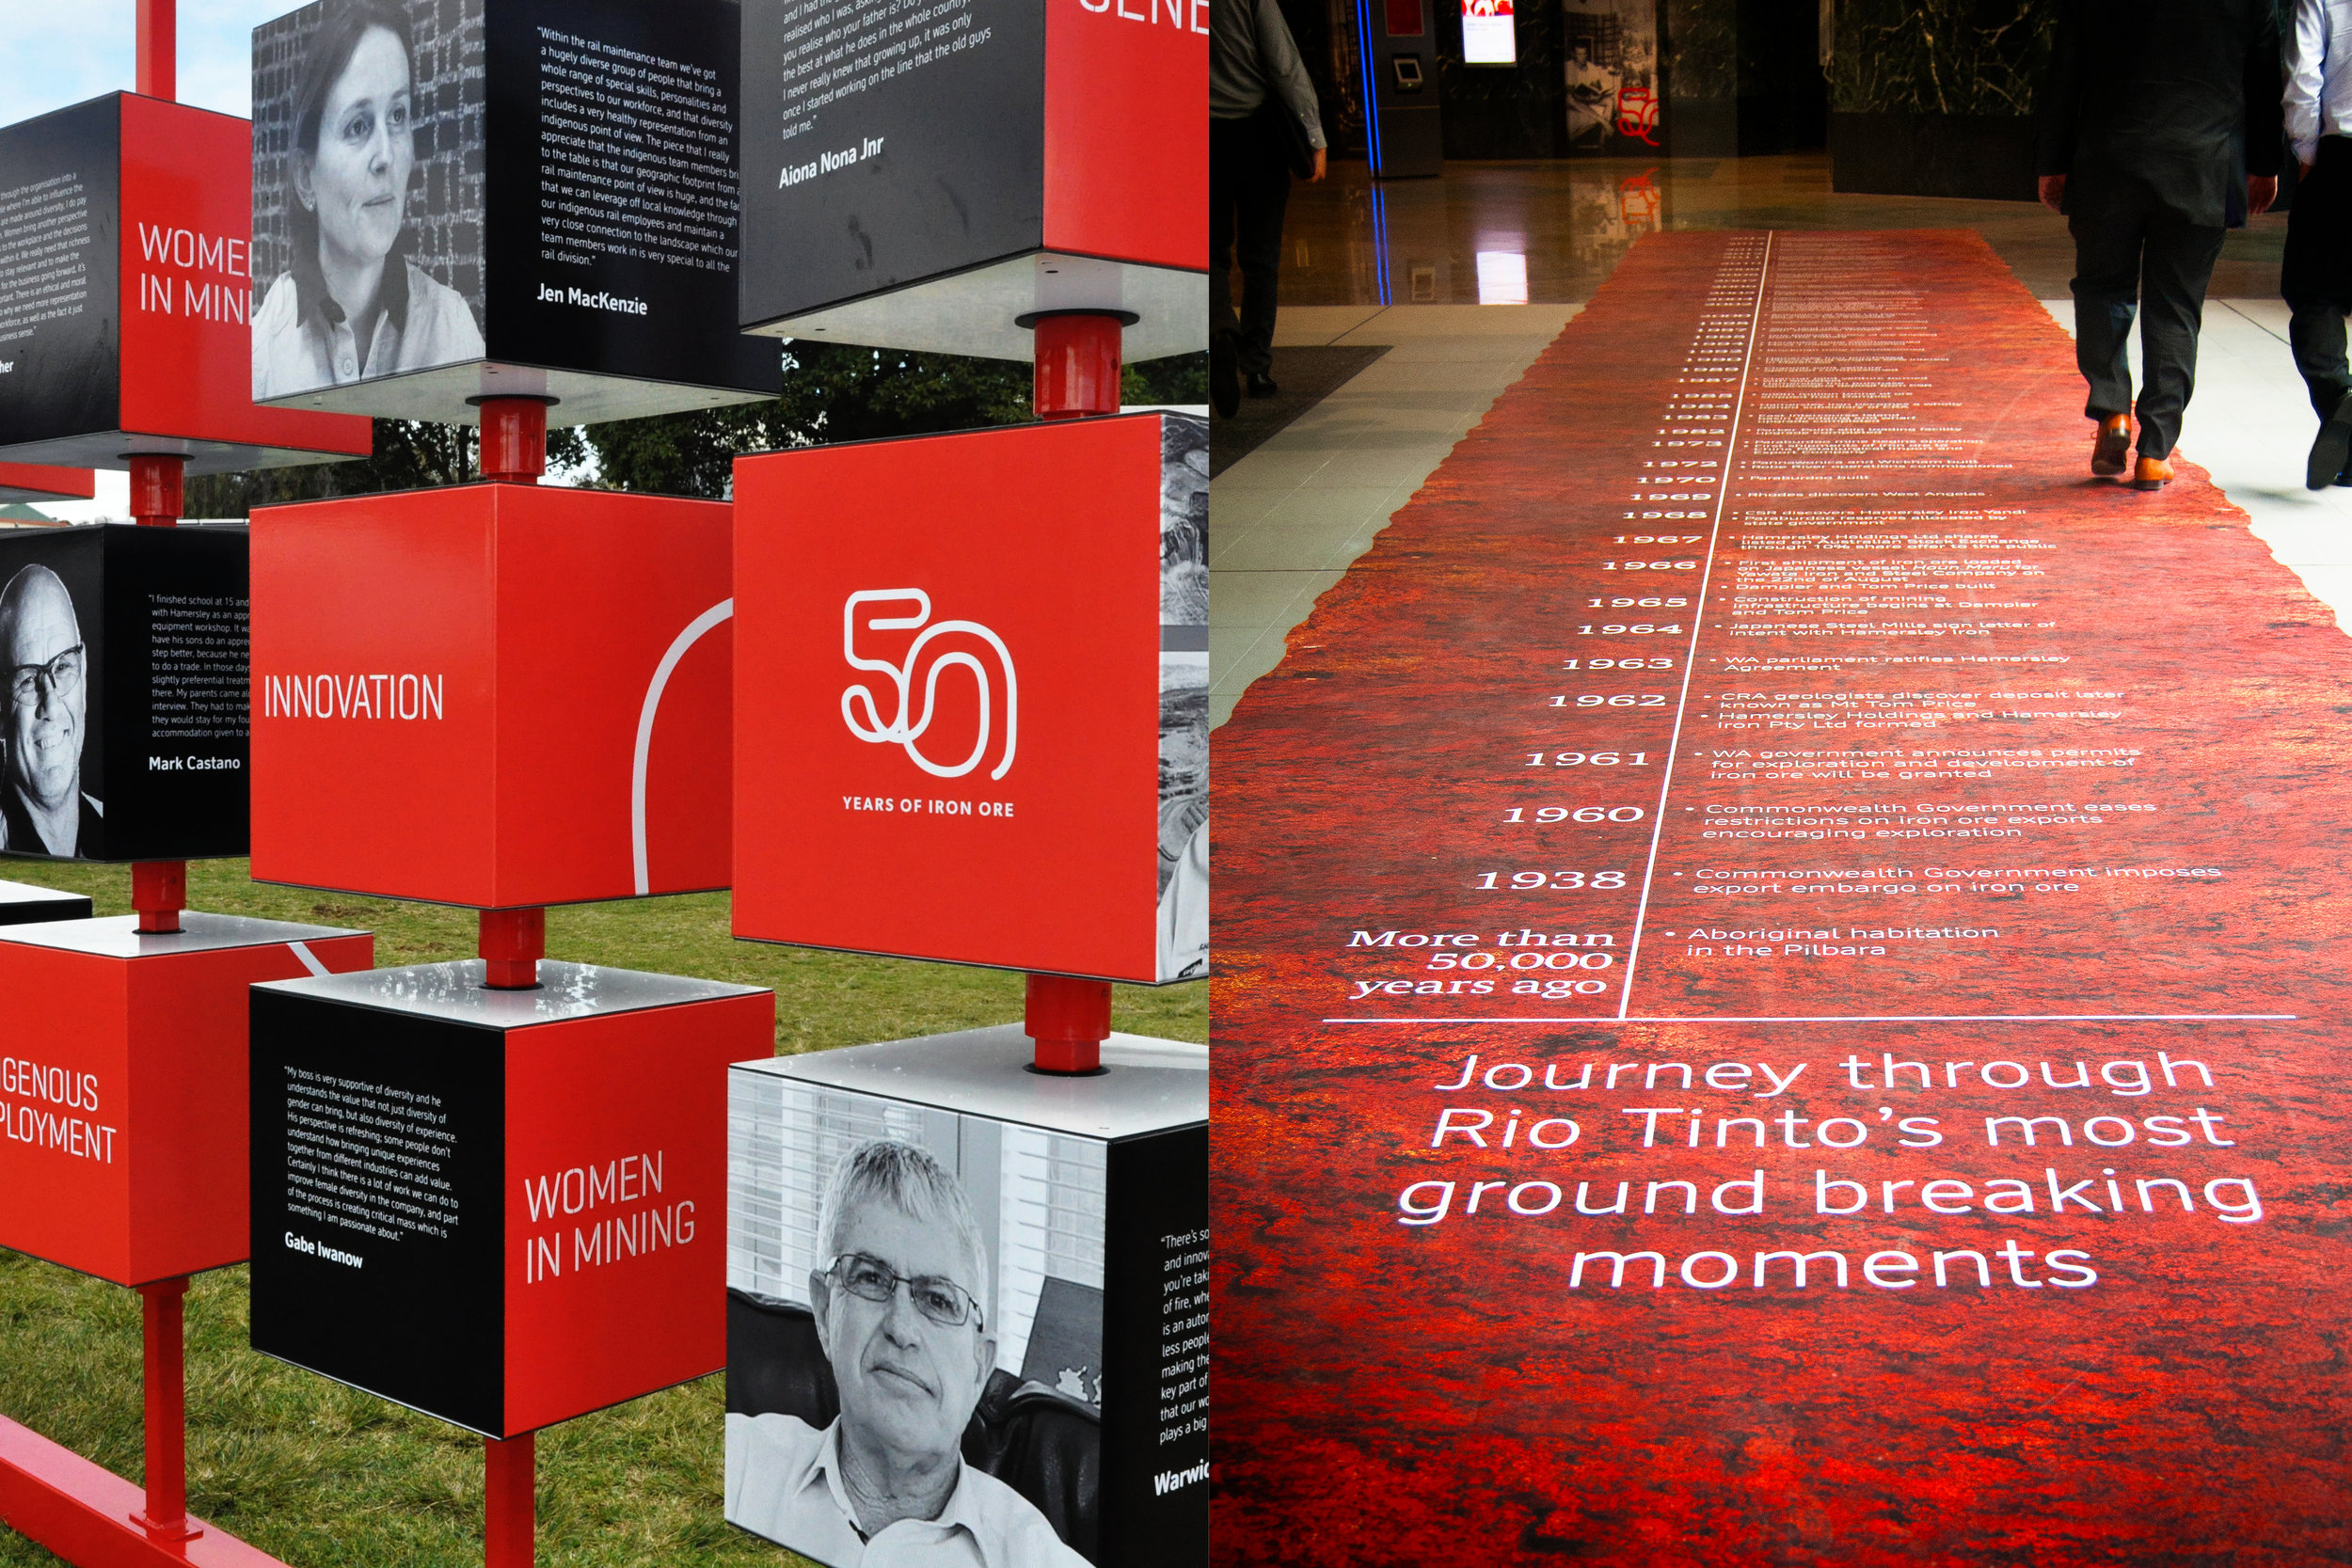 Rio Tinto 50 Year Celebration 2500 x 1667 pixels6.jpg